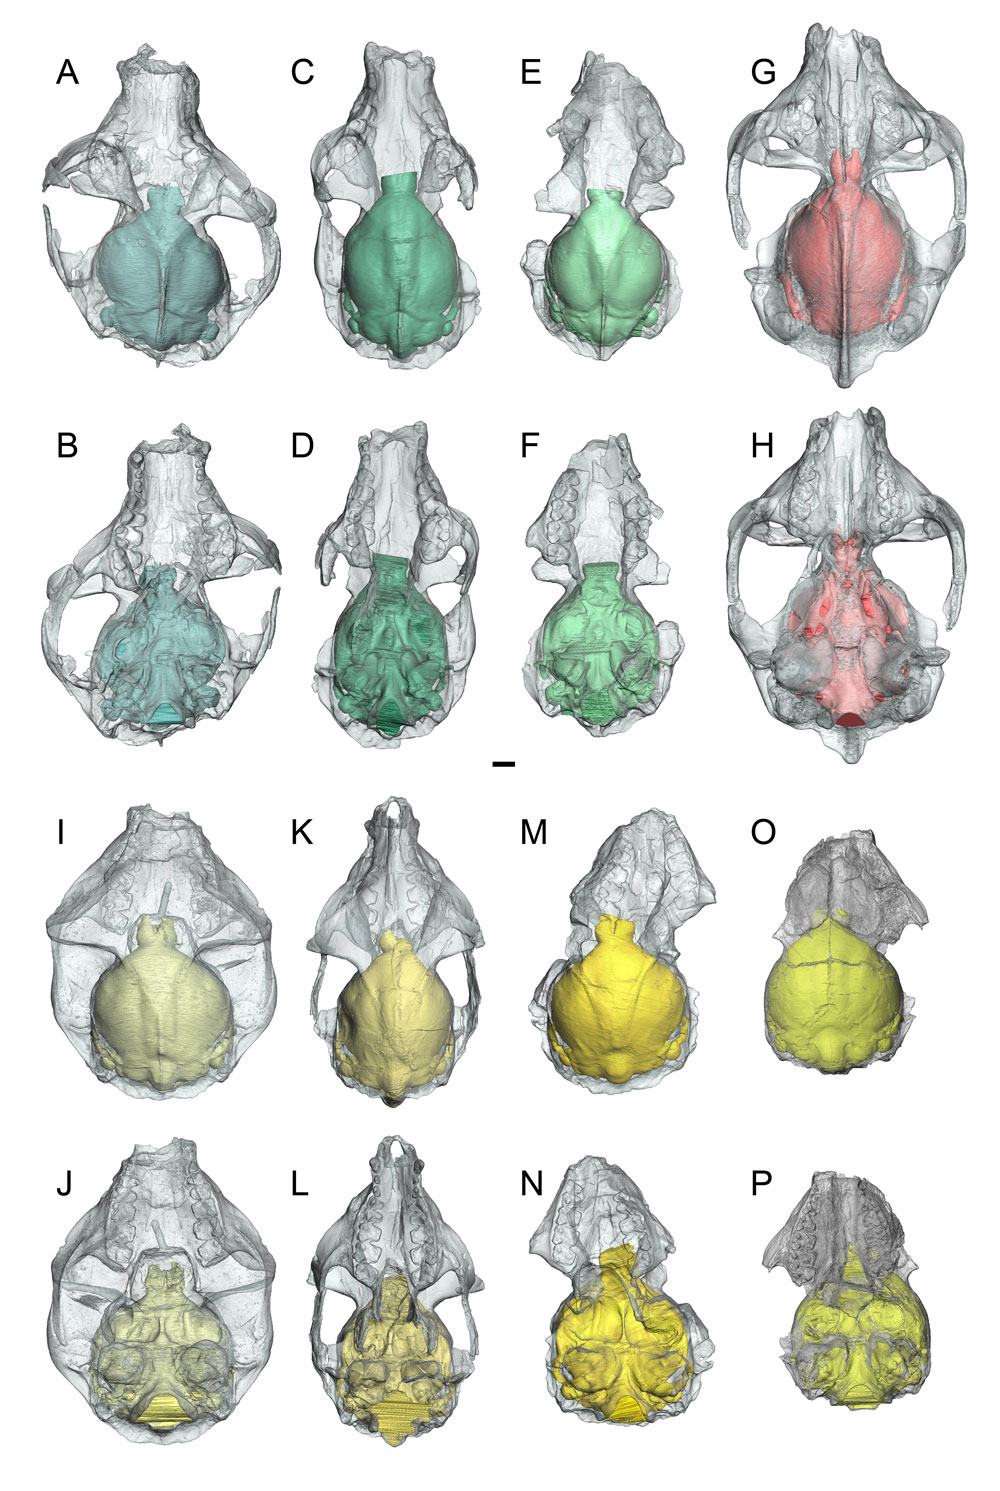 evolution primate intelligence Discuss the changes which occured in intelligence through primate evolution intelligence is correlated with brain size, gestation period, social organization, and mating patterns.